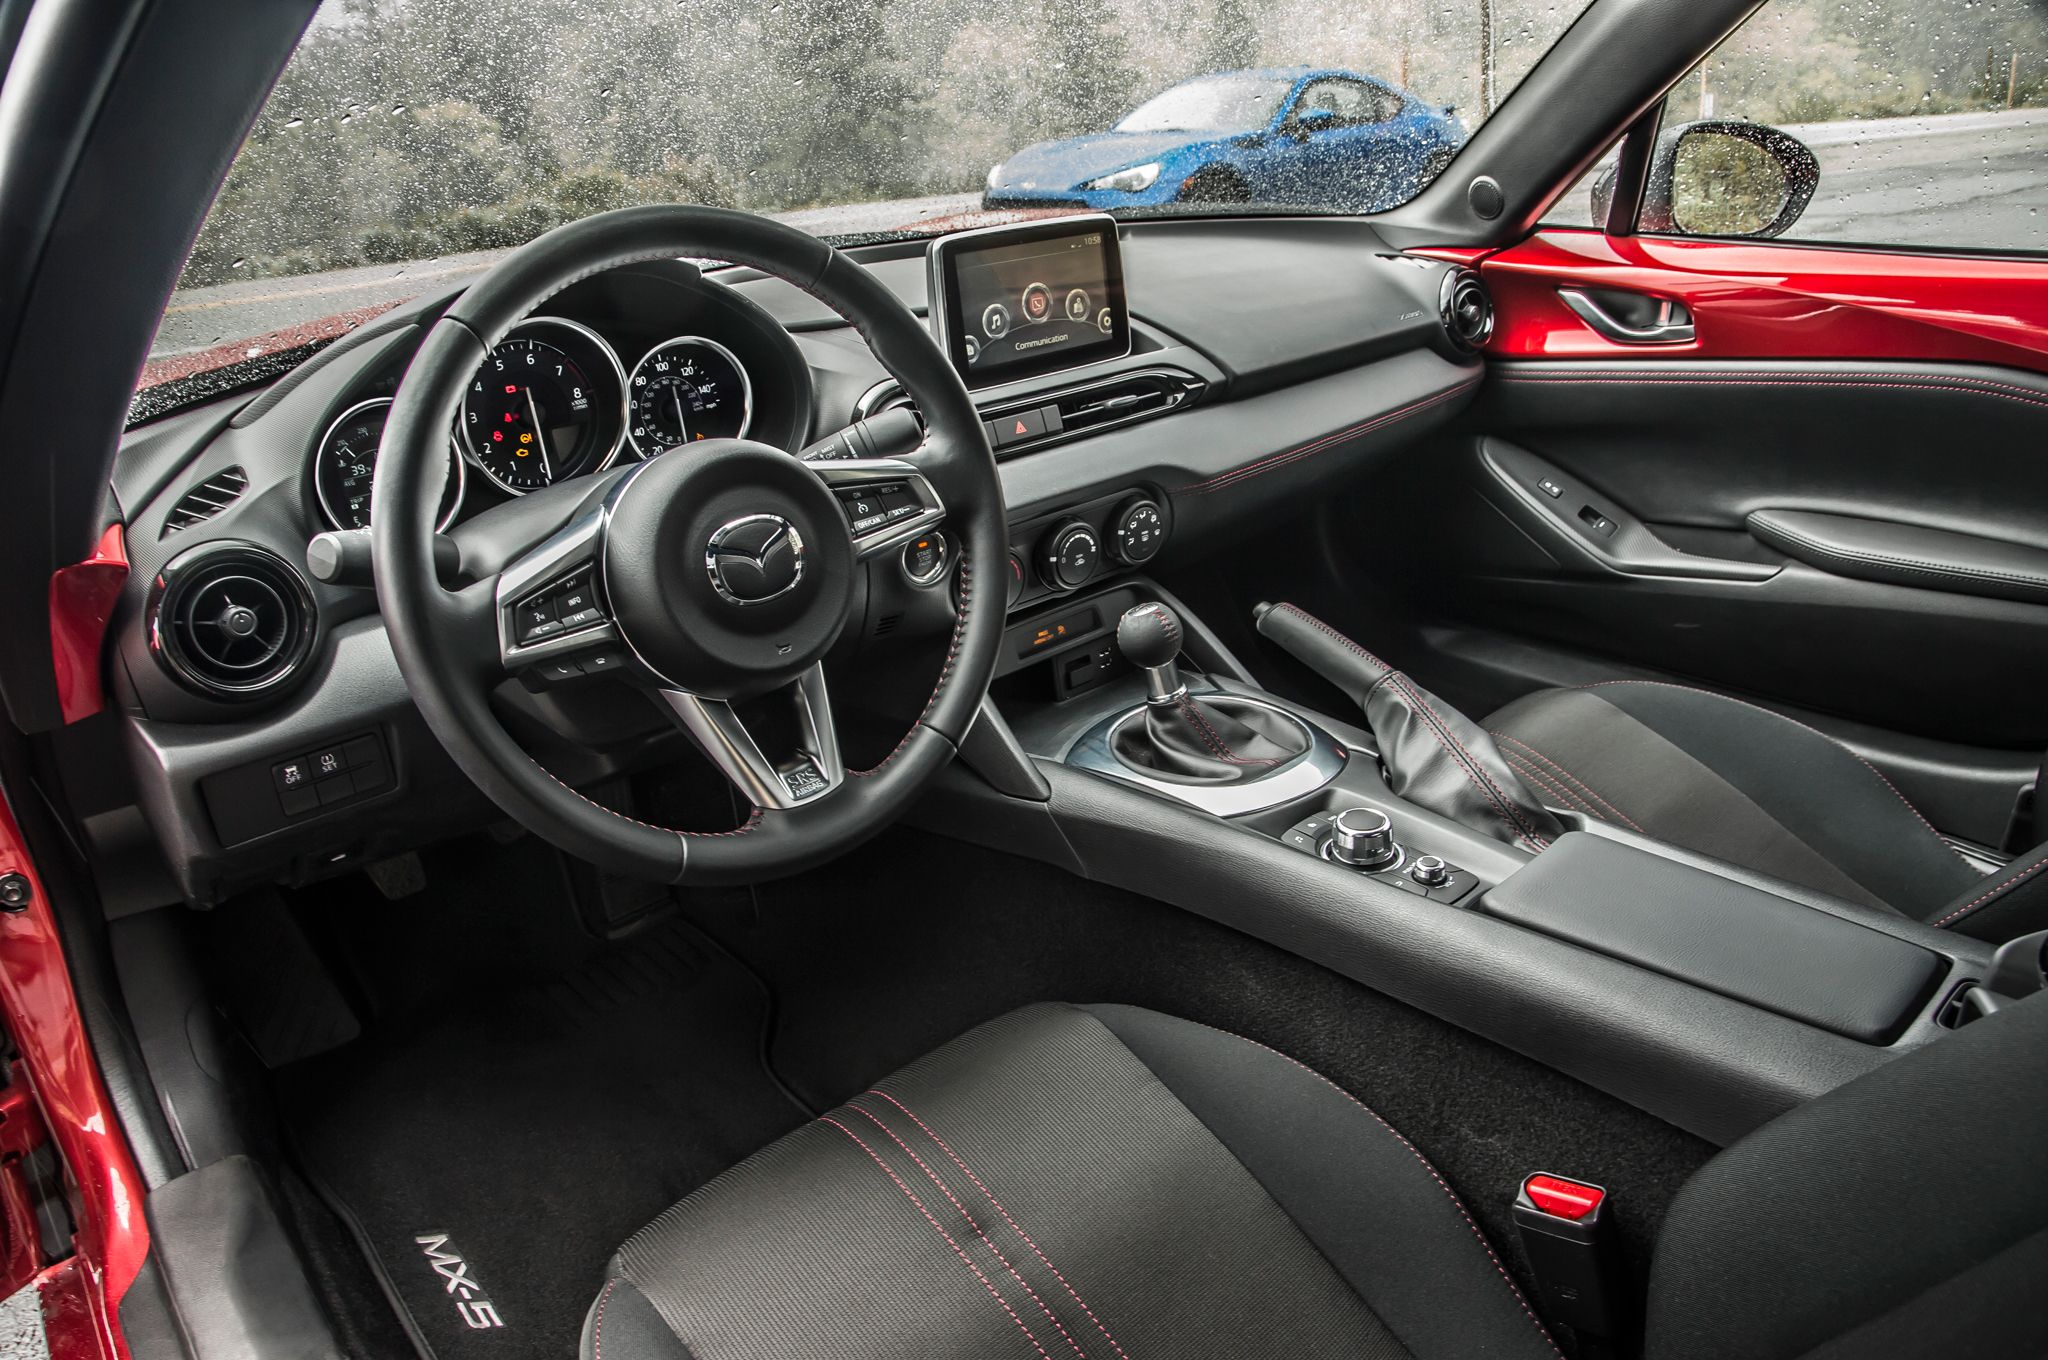 Charmant 2016 Miata ND Interior